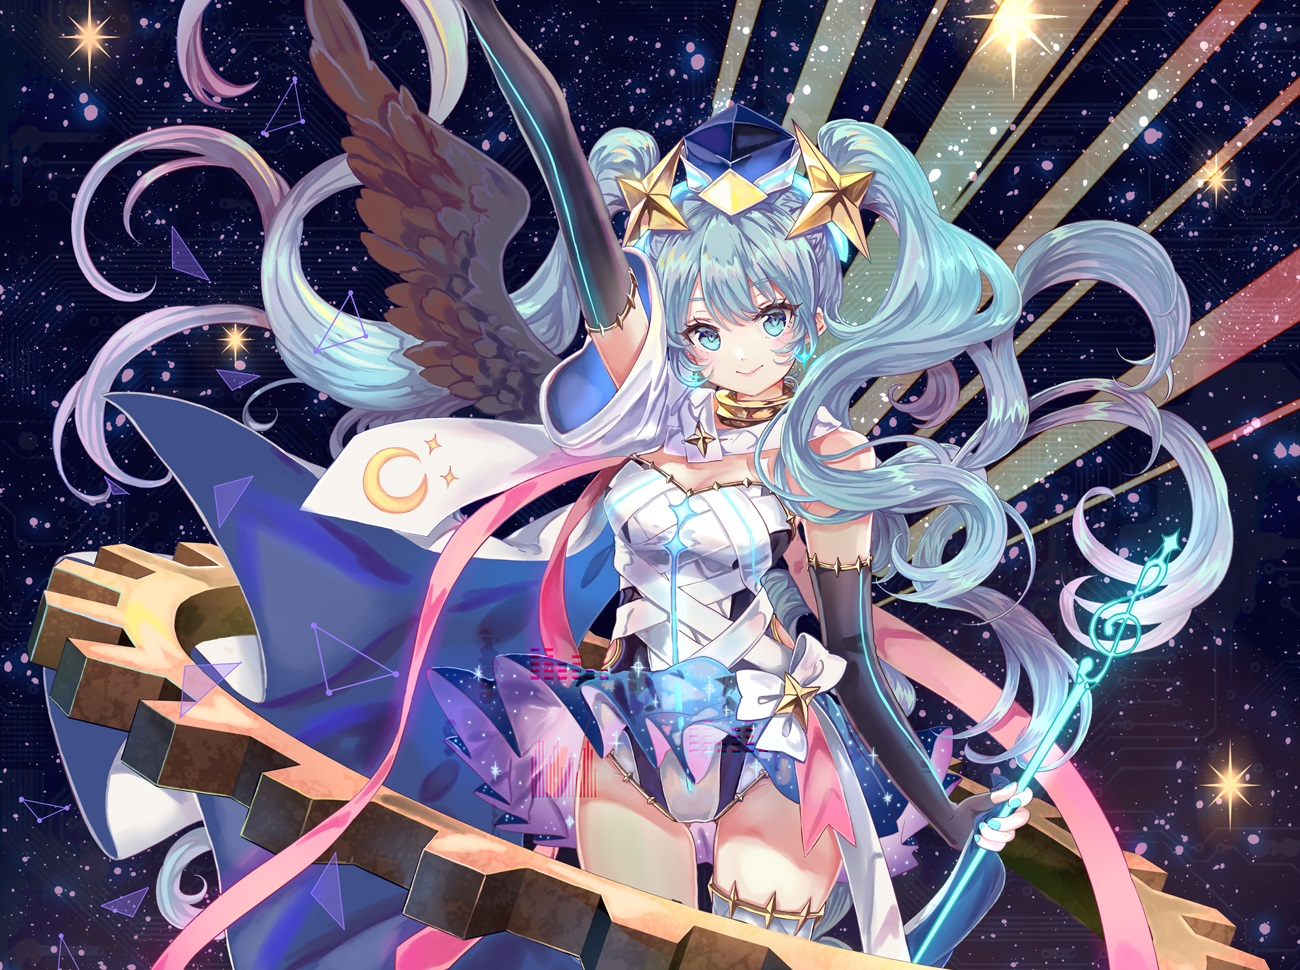 blue_hair bodysuit breasts choker cleavage cropped elbow_gloves gloves green_eyes hat hatsune_miku long_hair magical_mirai_(vocaloid) pisuke ribbons staff stars thighhighs twintails vocaloid wings